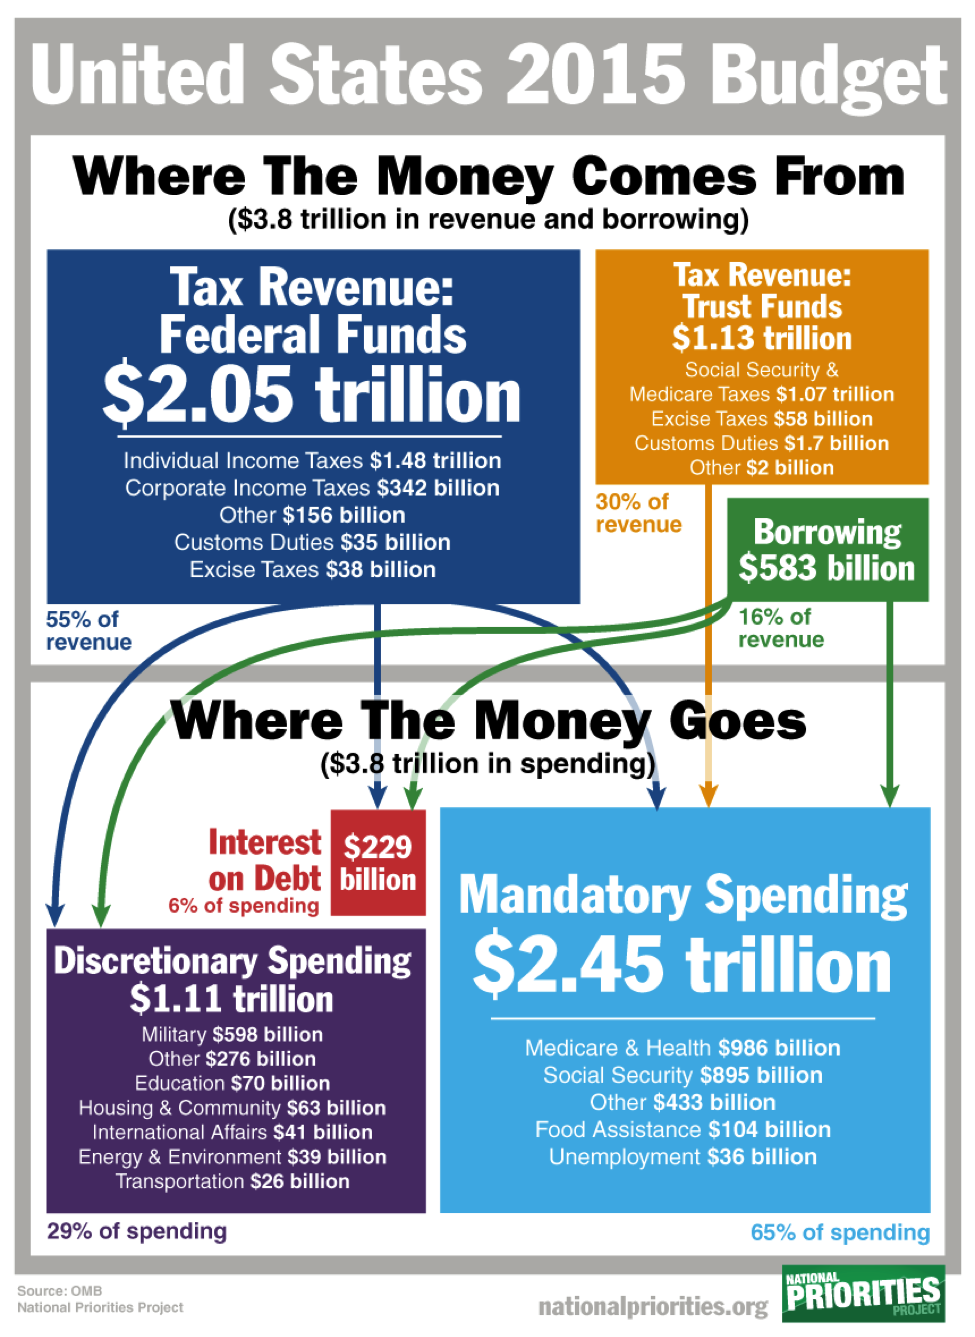 If i live in georgia how much of my paycheck goes to lazy people heres the breakdown of federal spending nvjuhfo Images